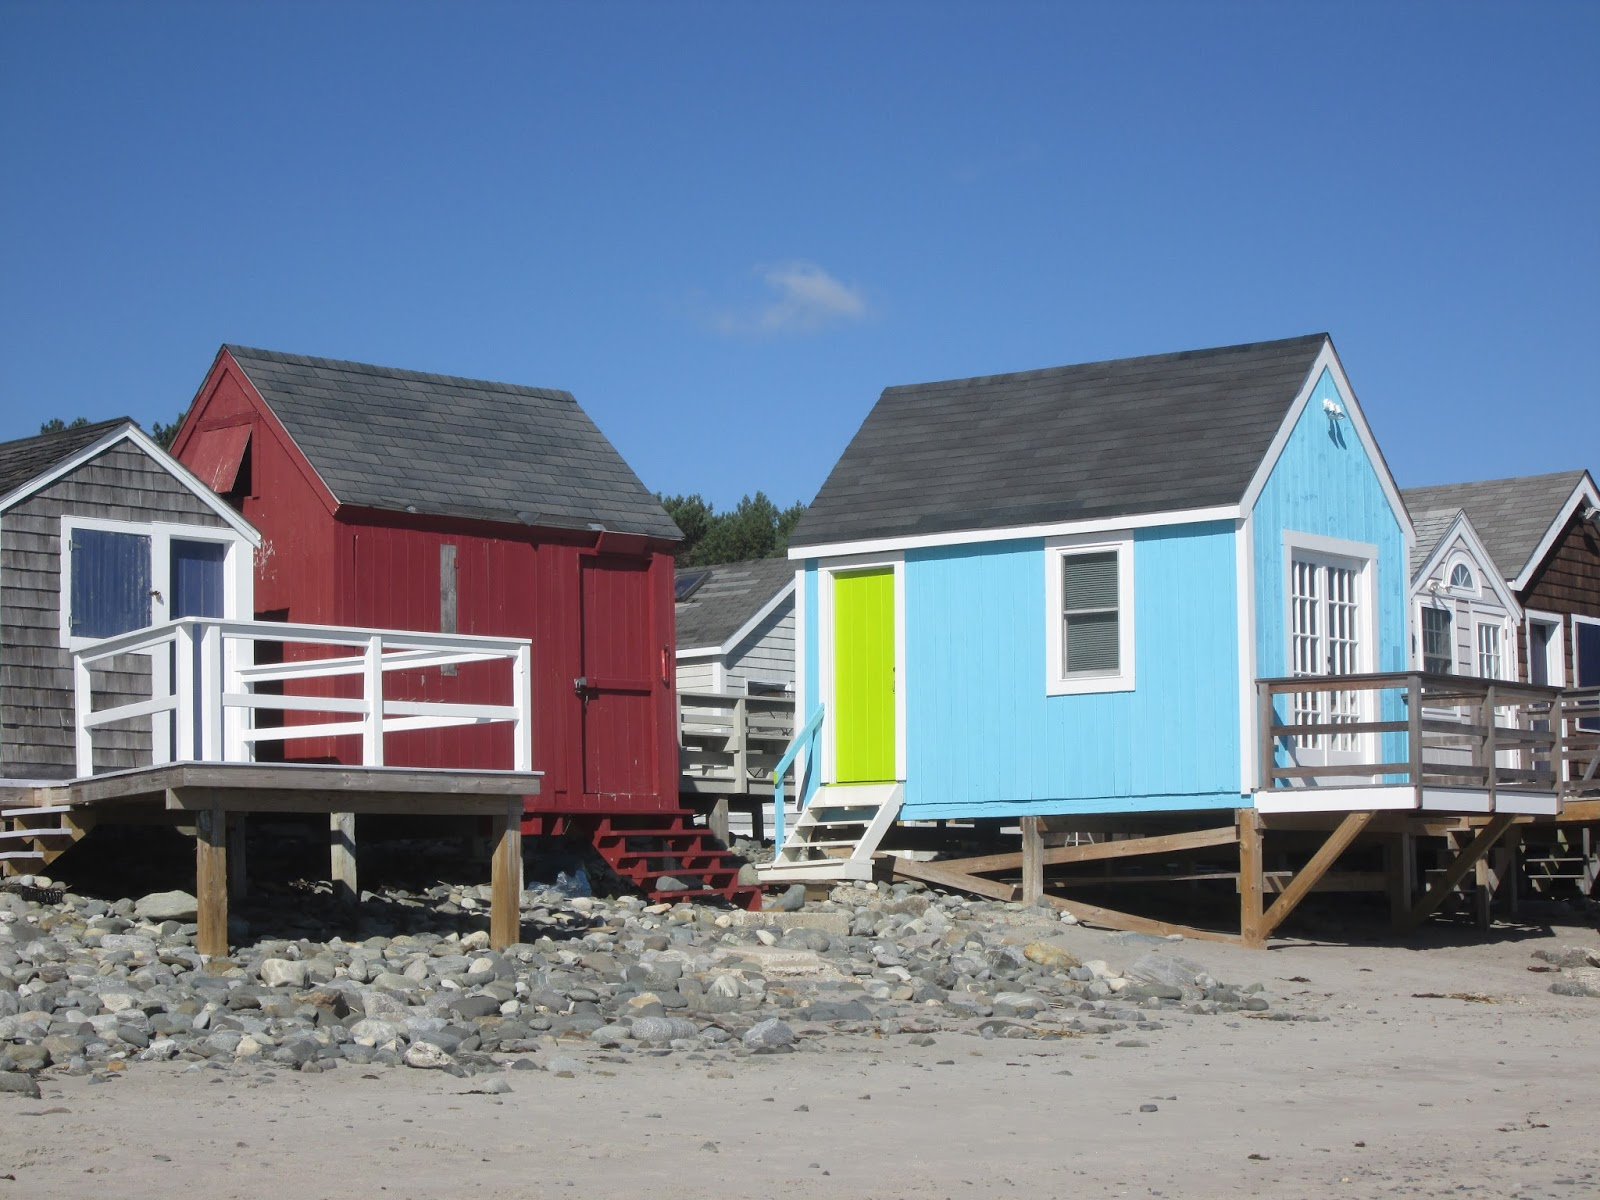 on for road canada click cottages sold hampton beach item of manitoba listing bath image cottage victoria